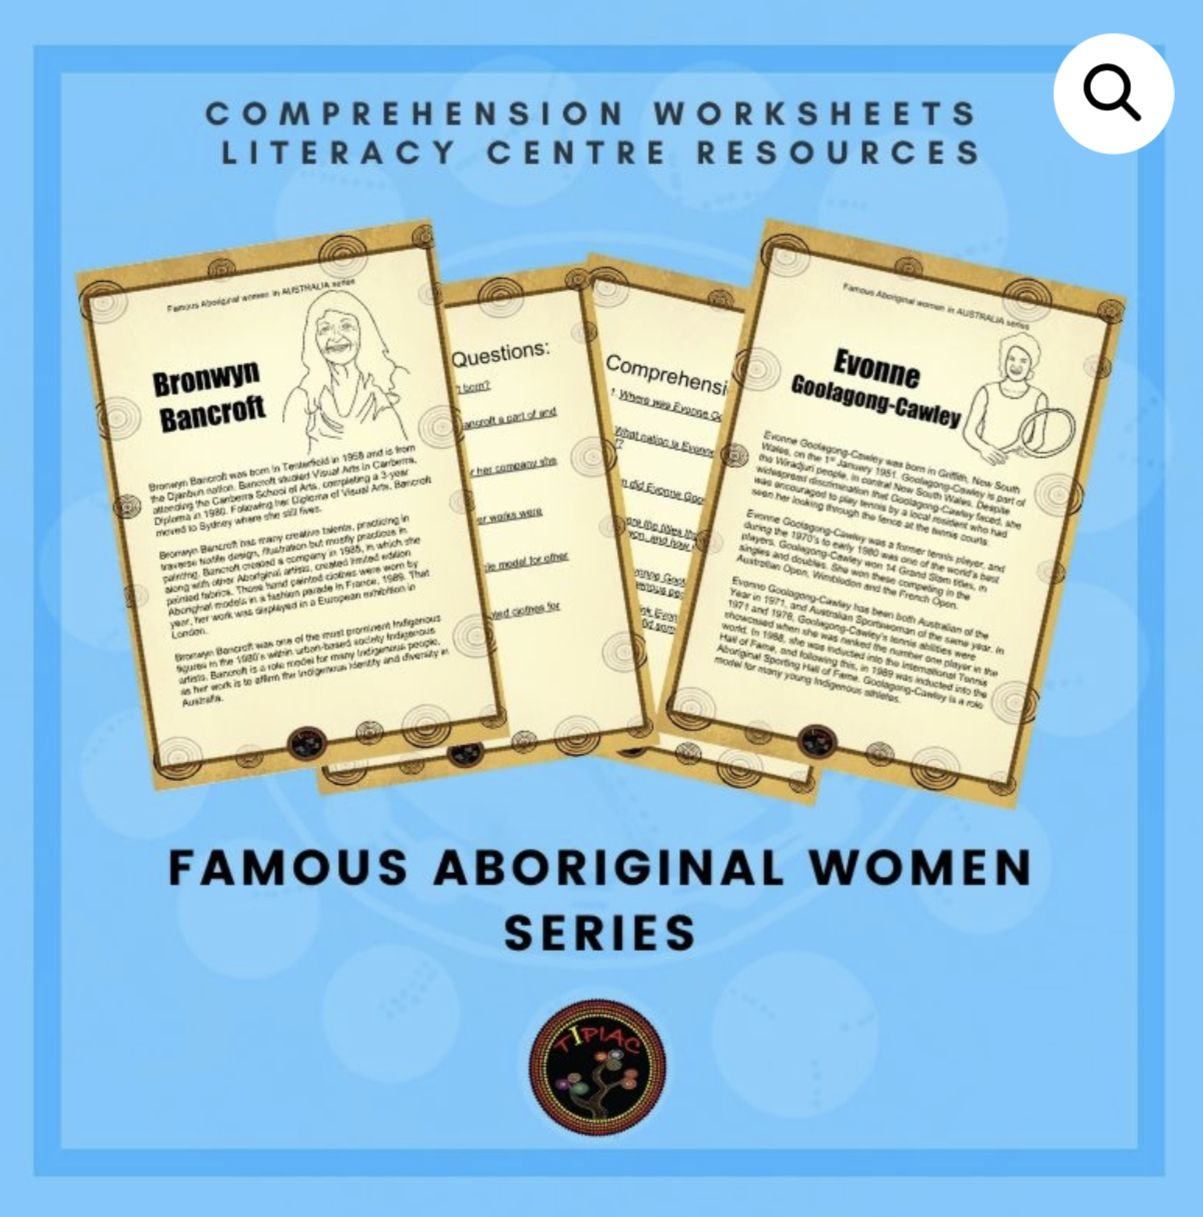 Famous Women Comprehension Worksheets In